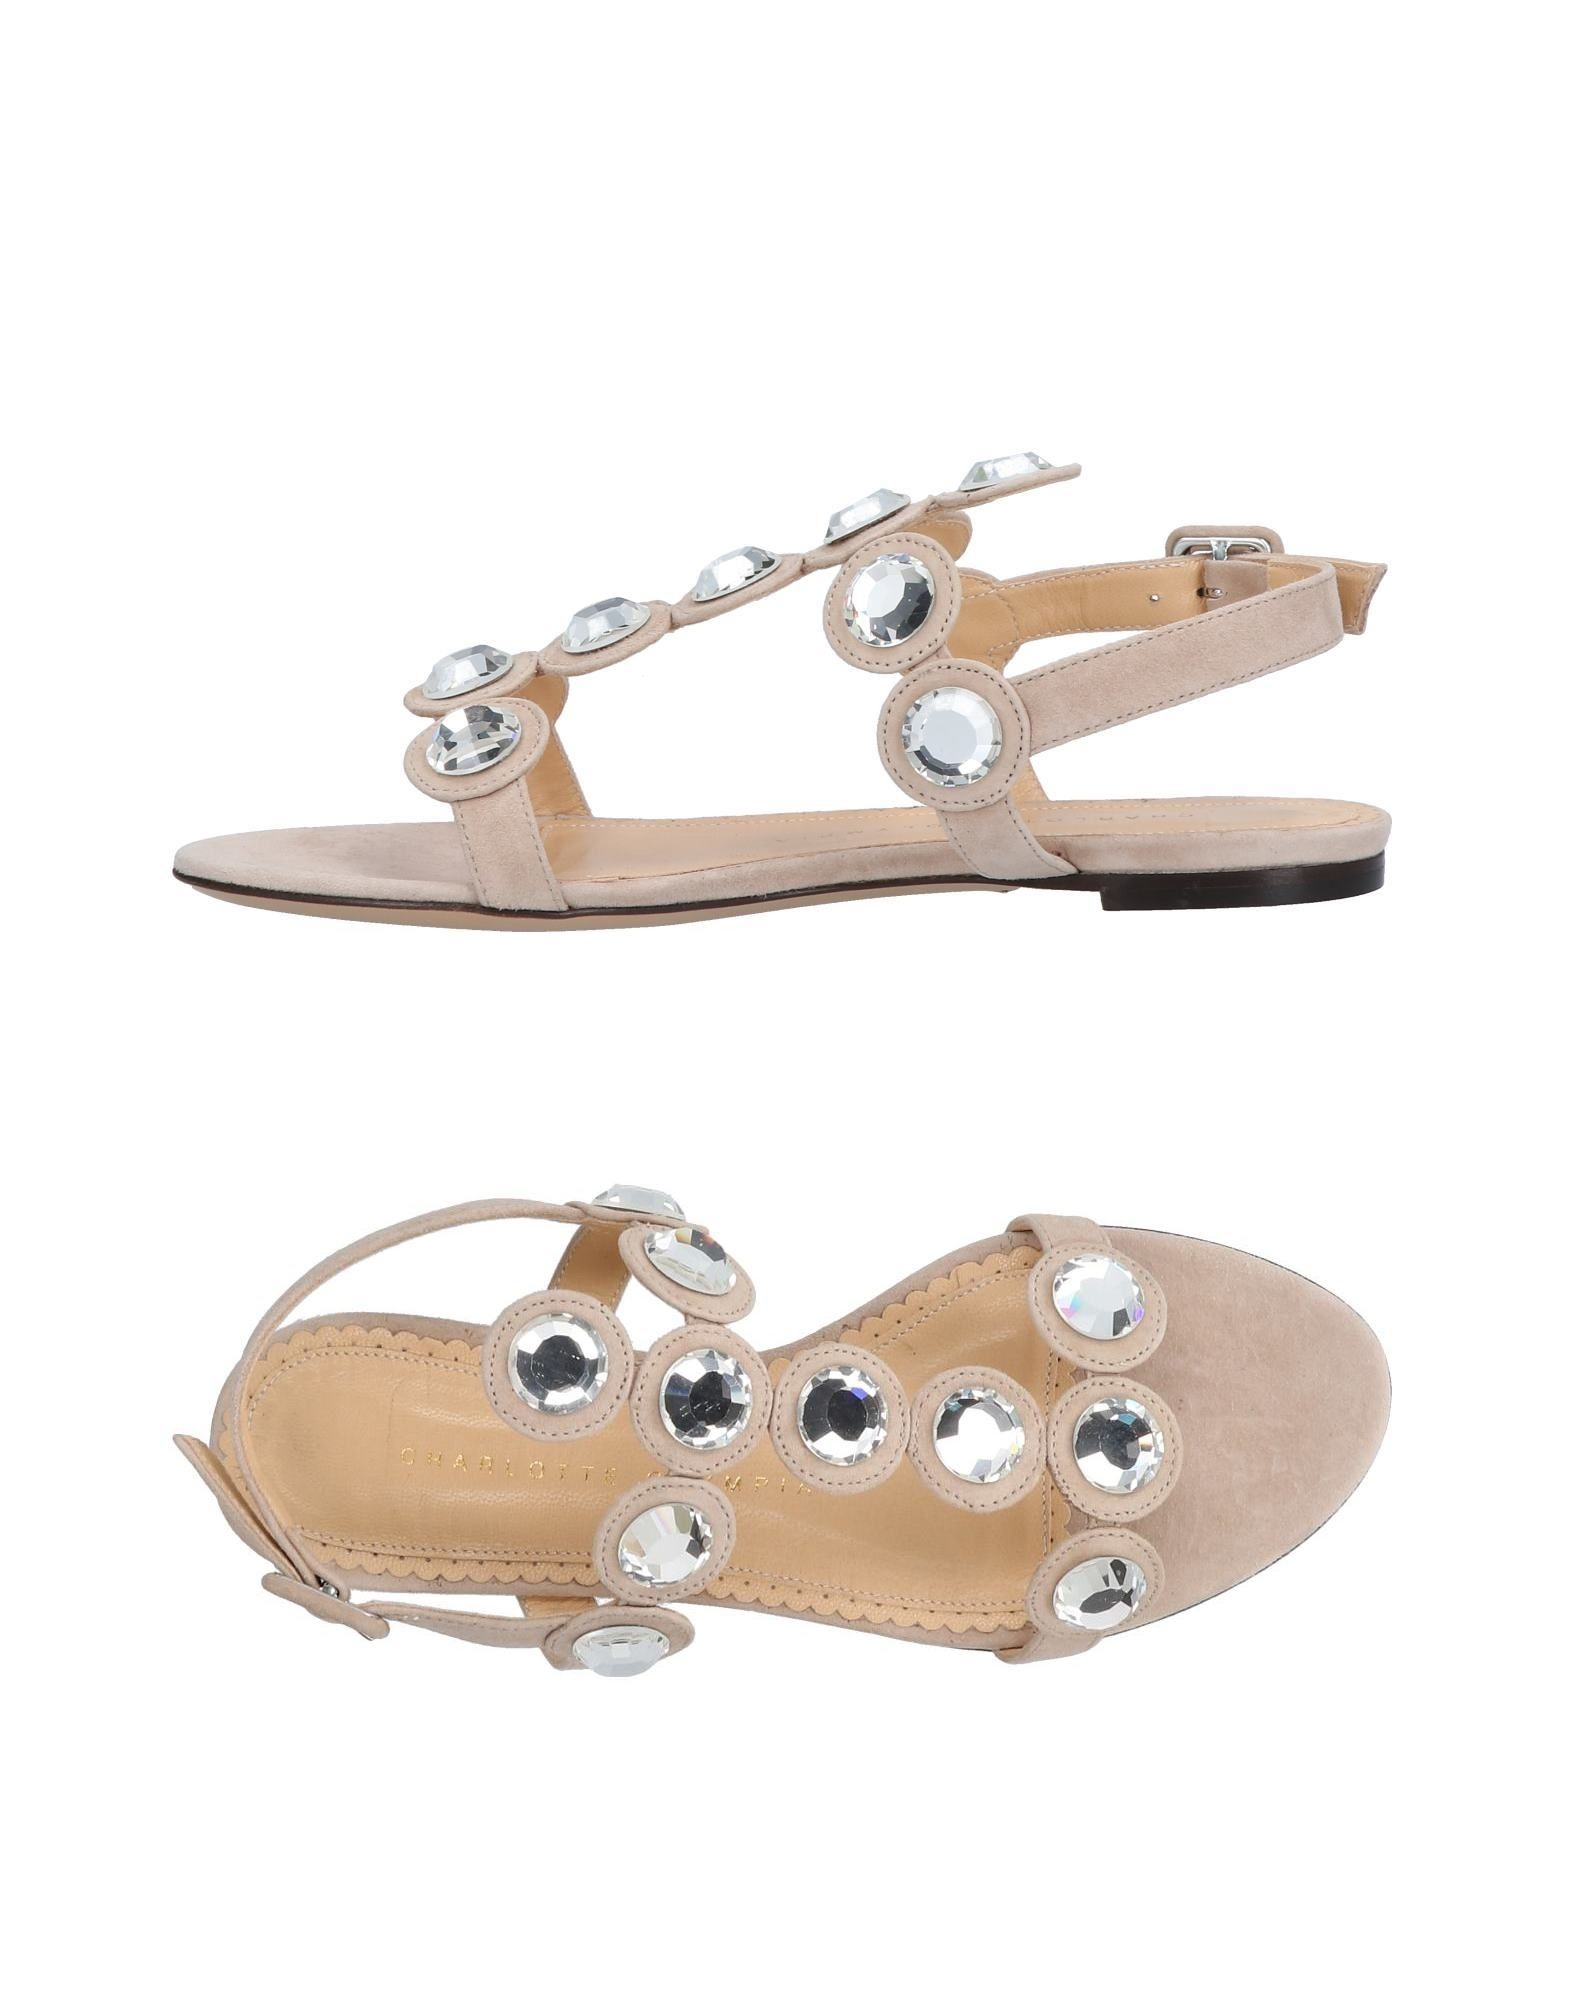 Charlotte Olympia Sandals Sandals - Women Charlotte Olympia Sandals Sandals online on  United Kingdom - 11487195RS dd1846